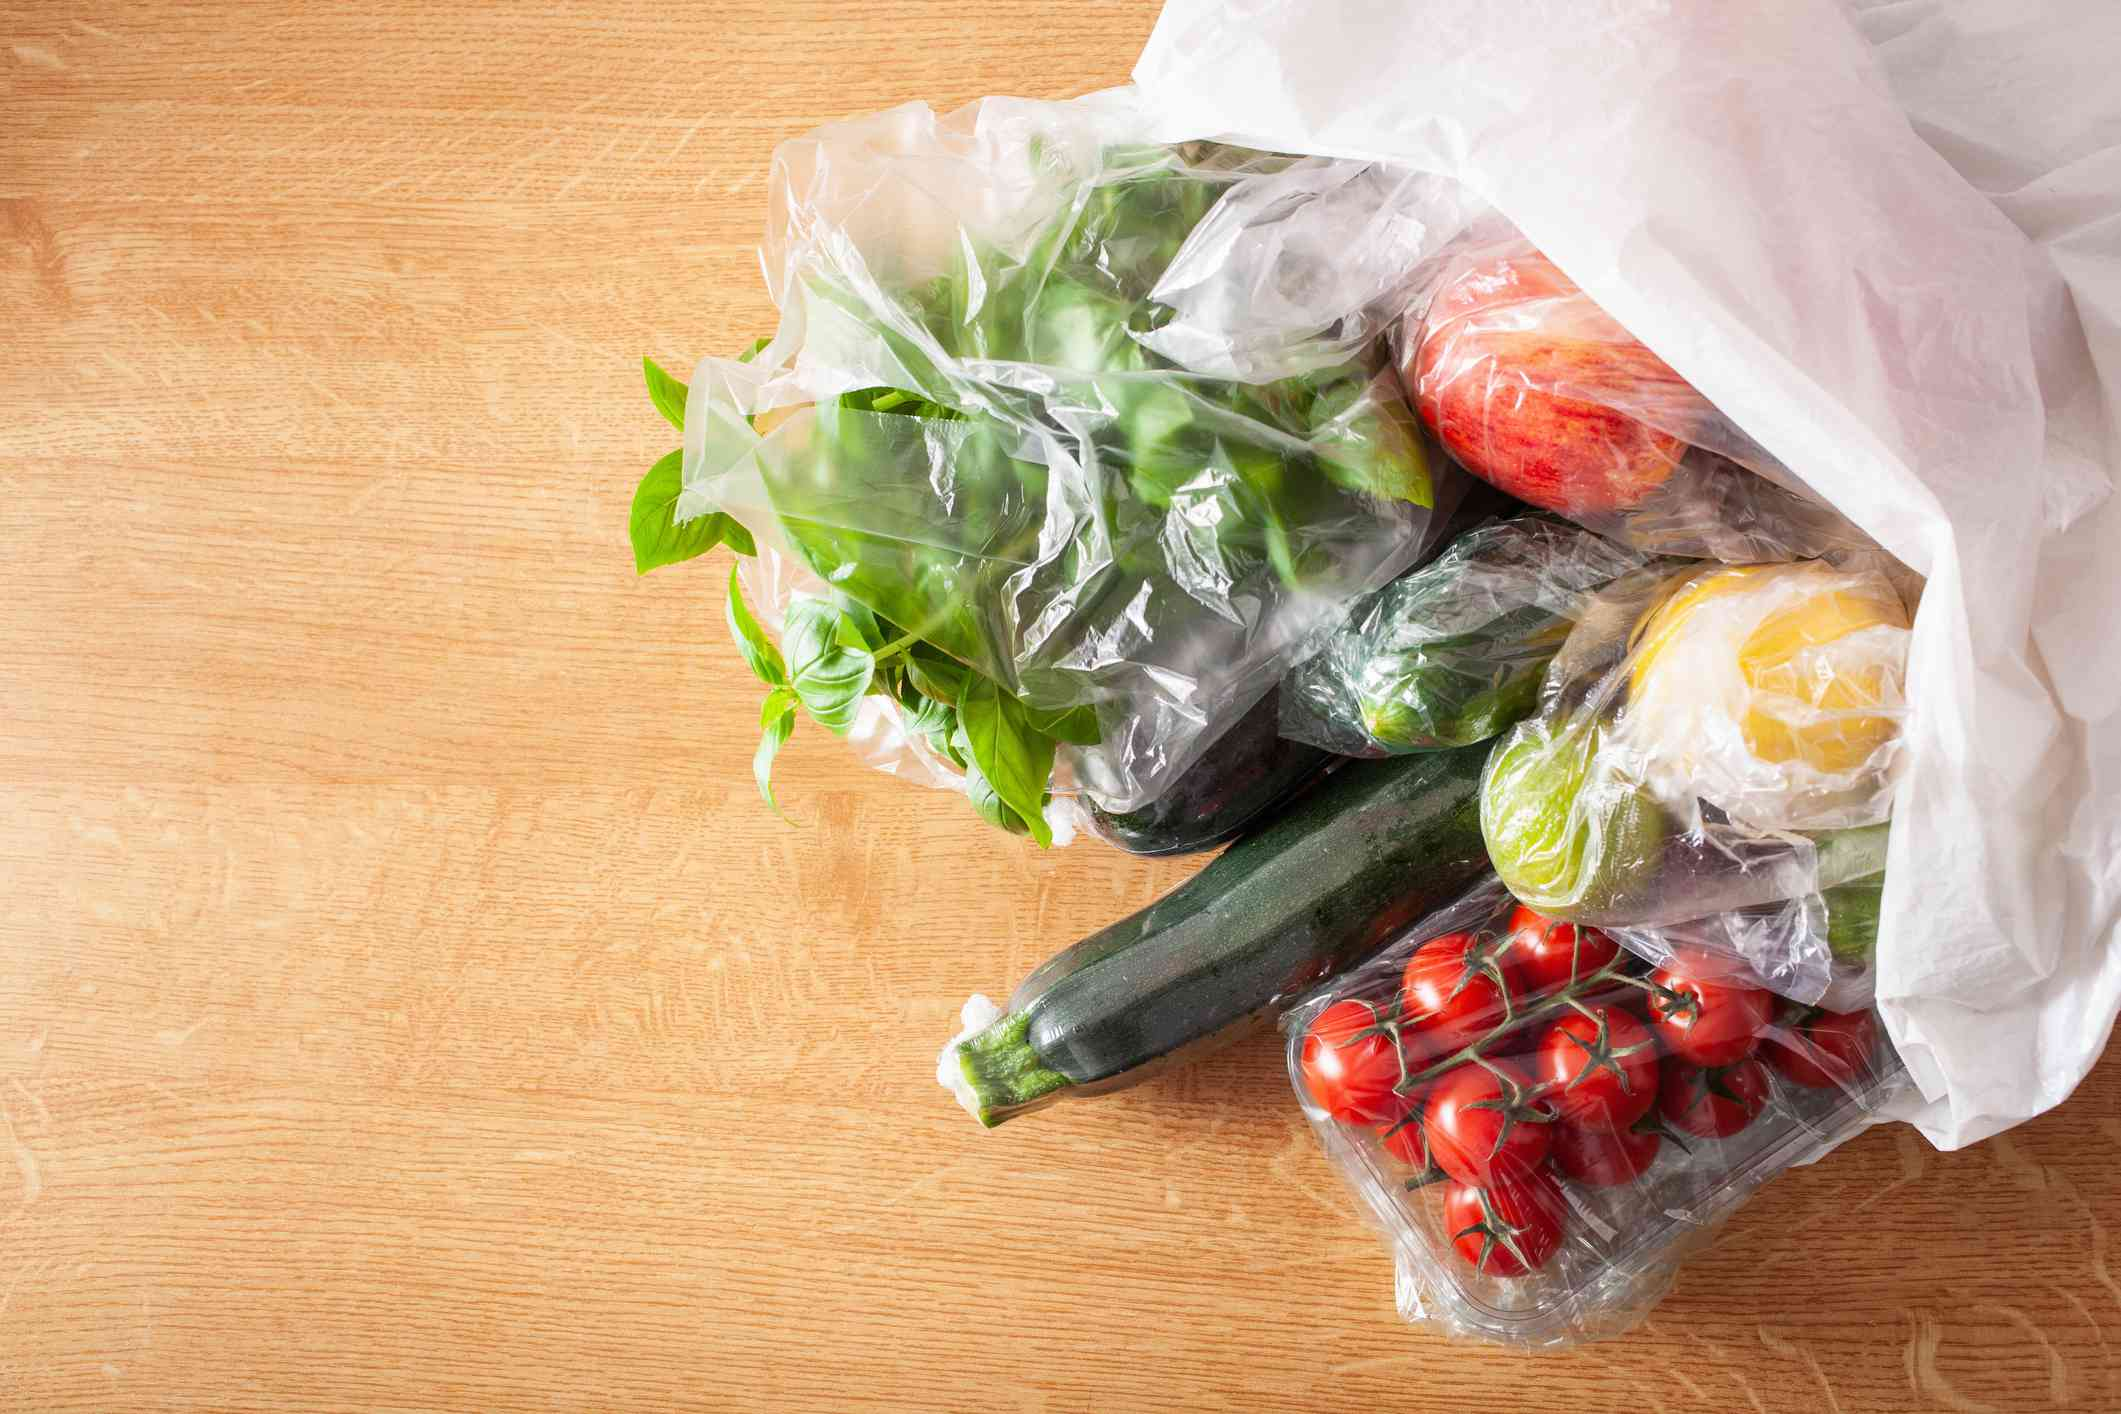 A plastic grocery bag with plastic-covered produce inside.